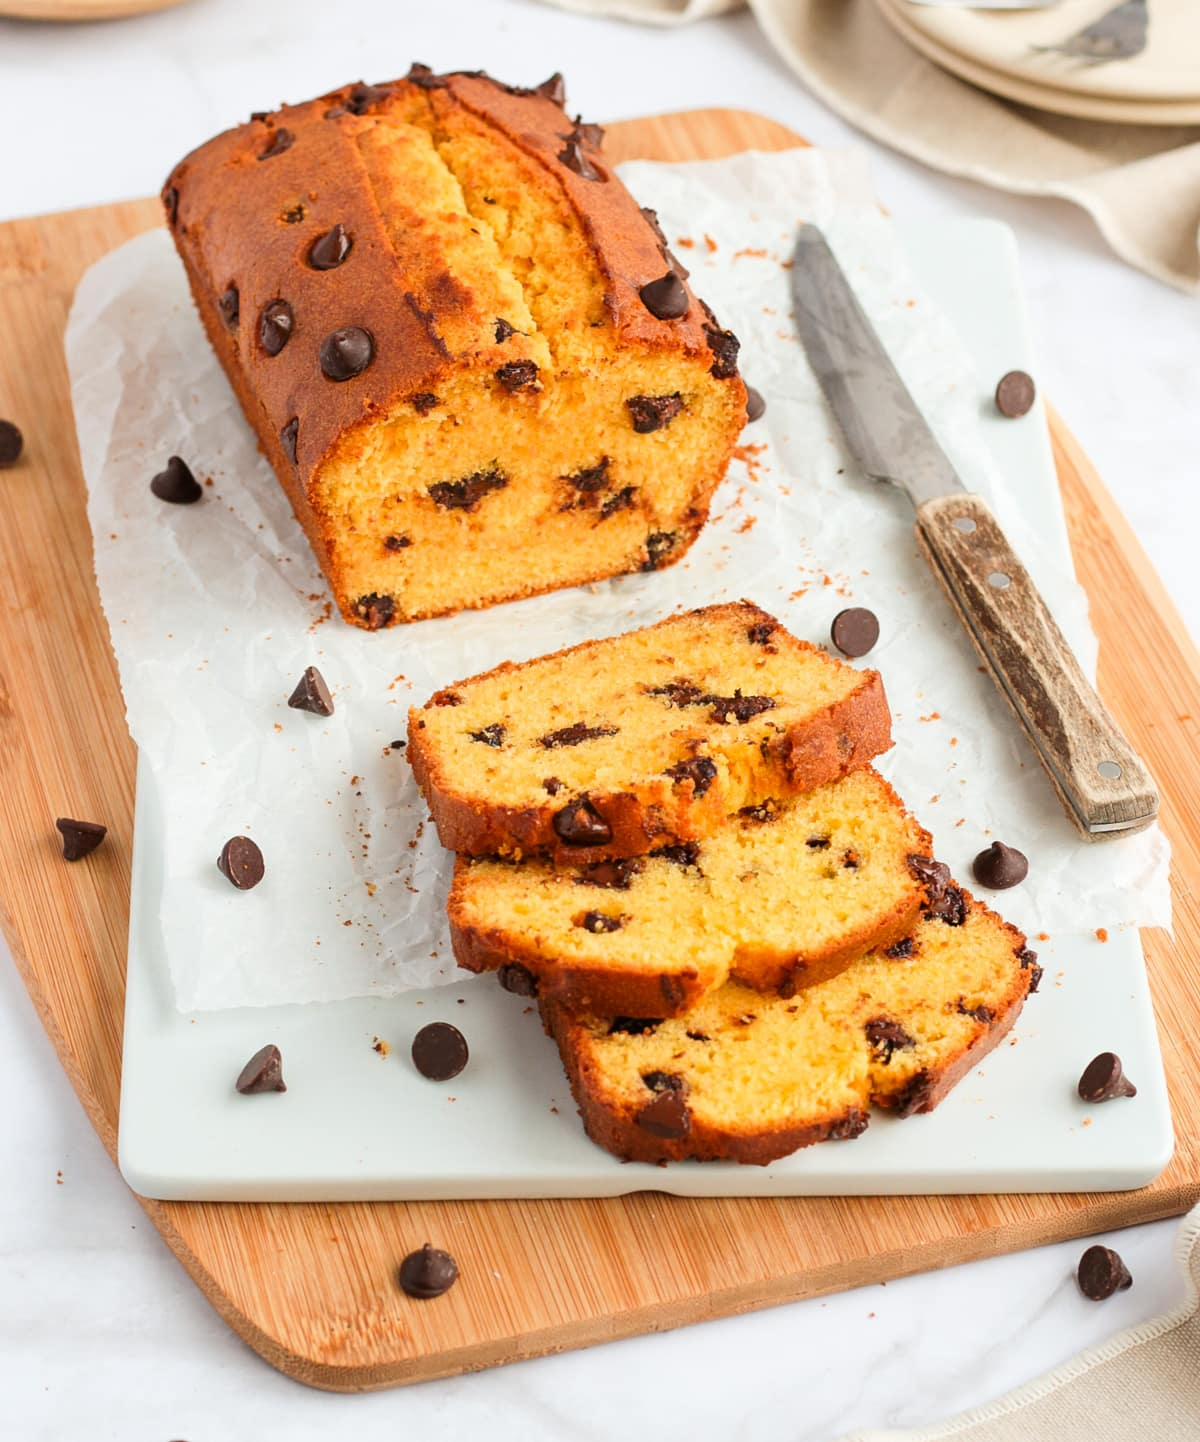 3 slices of cake laying next to the loaf on a white and wooden board